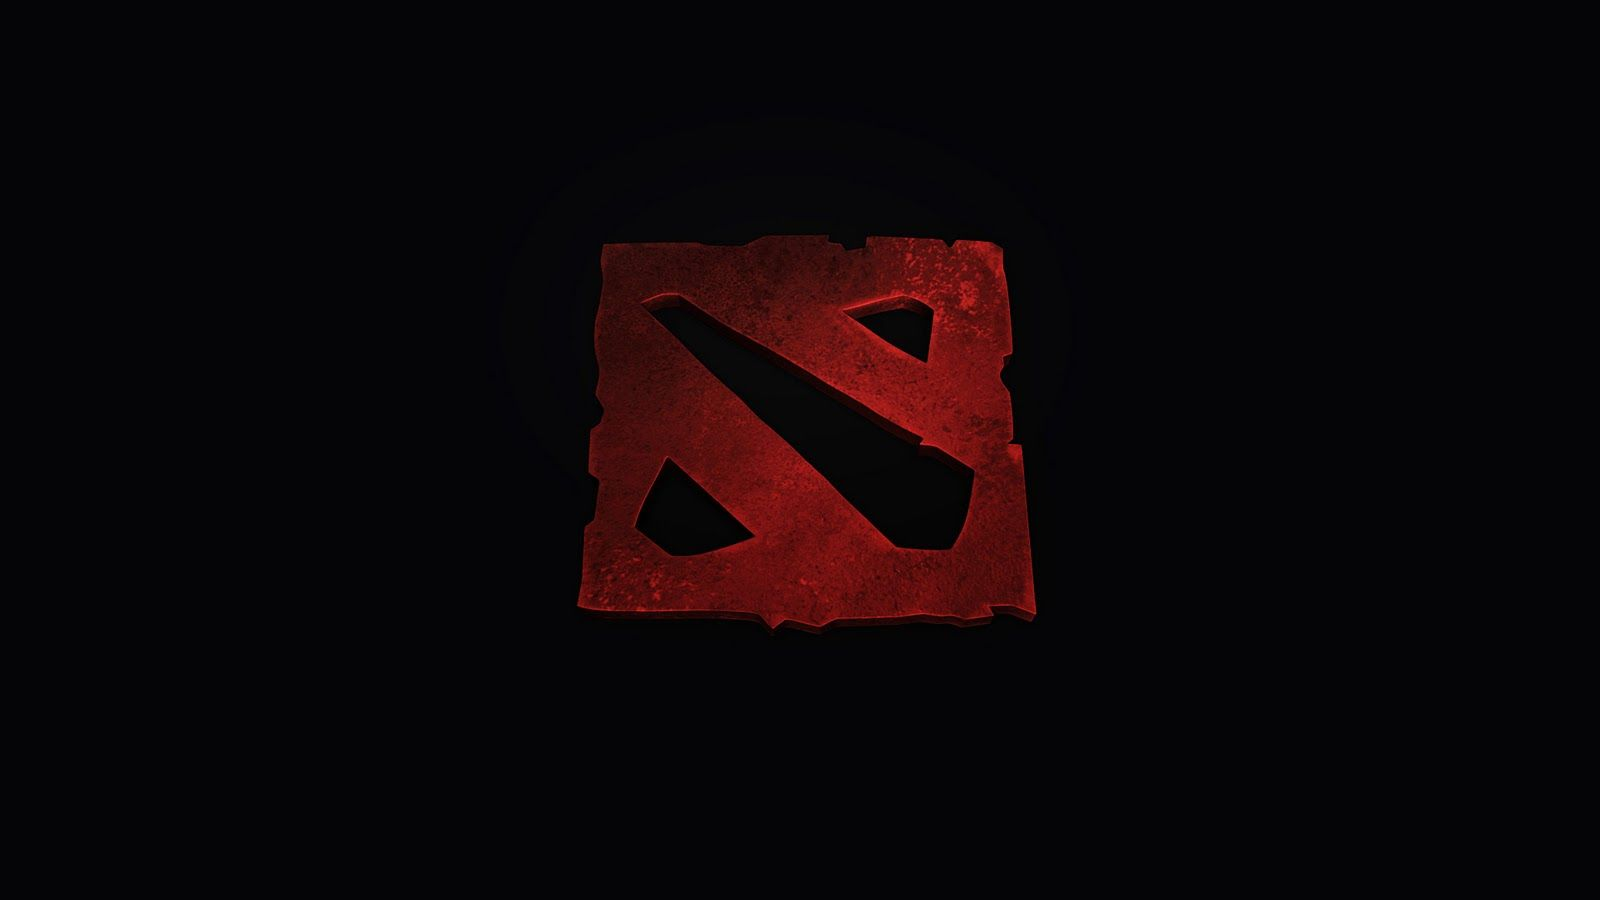 Dota 2 Logos Hd Wallpapers In Pc Games Free Download Is A Awesome Background Dota 2 Logo Logo Wallpaper Hd Dota 2 Wallpapers Hd